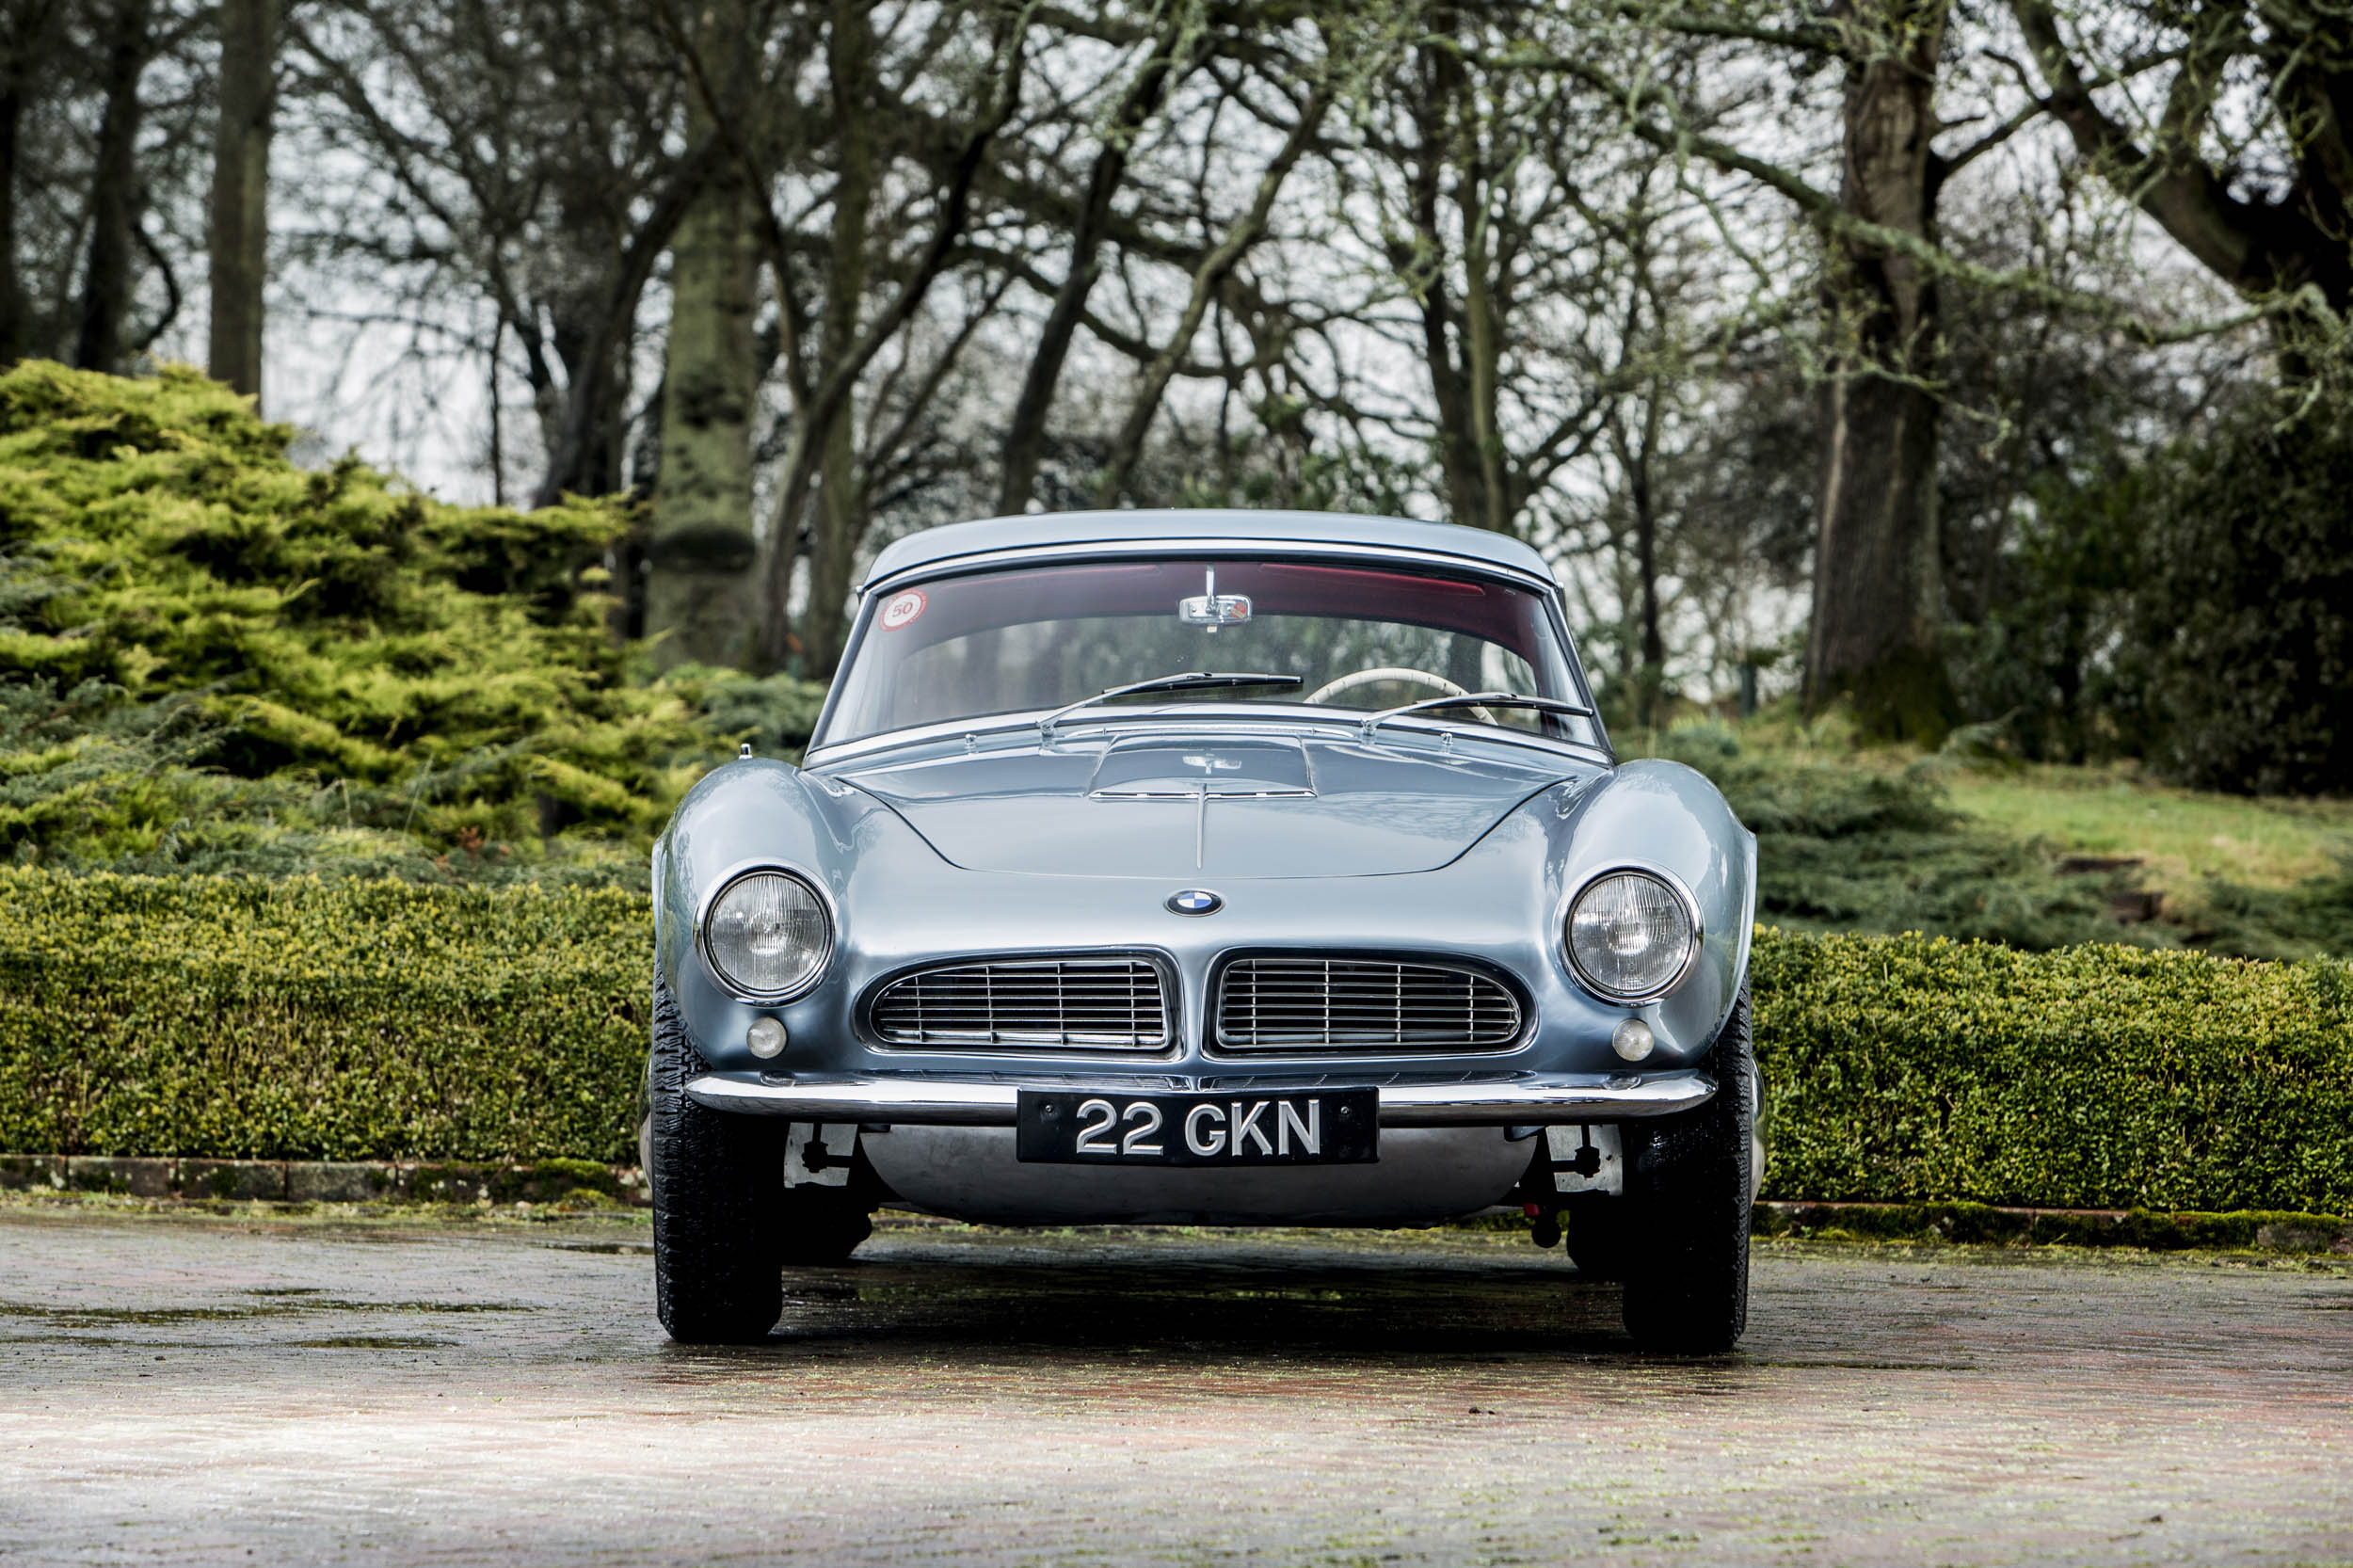 John Surtees' 1957 BMW 507 front